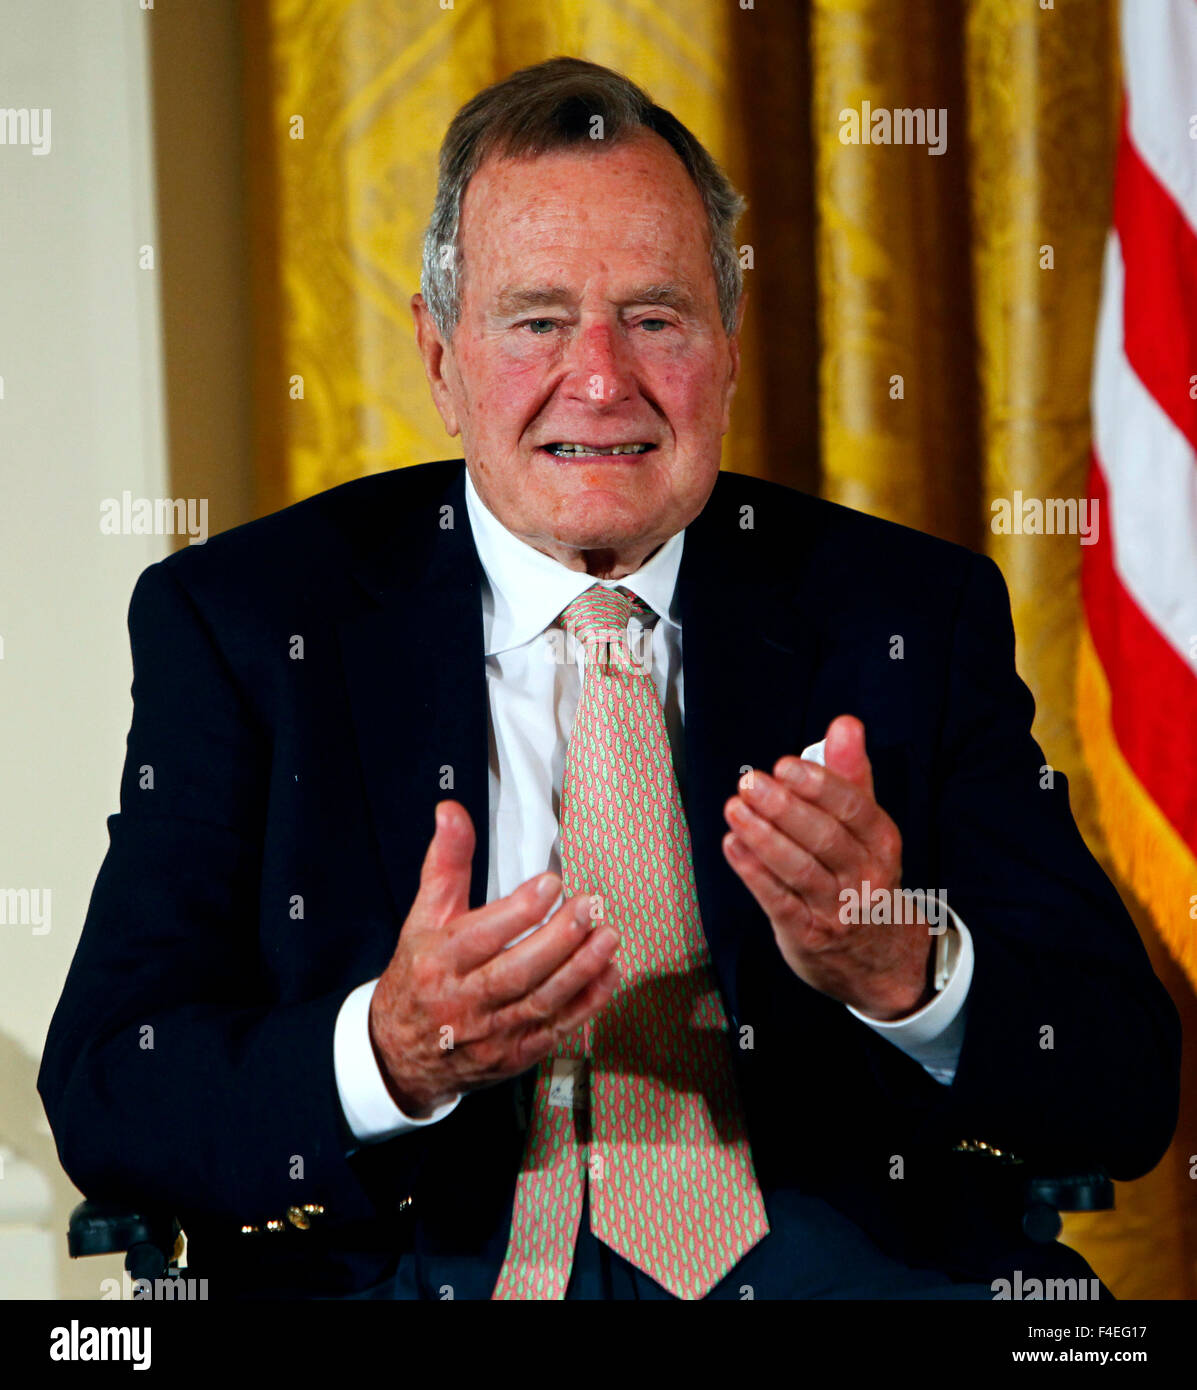 Former President George H.W. Bush and President Barack Obama at a ceremony in the East Room of the White House to - Stock Image